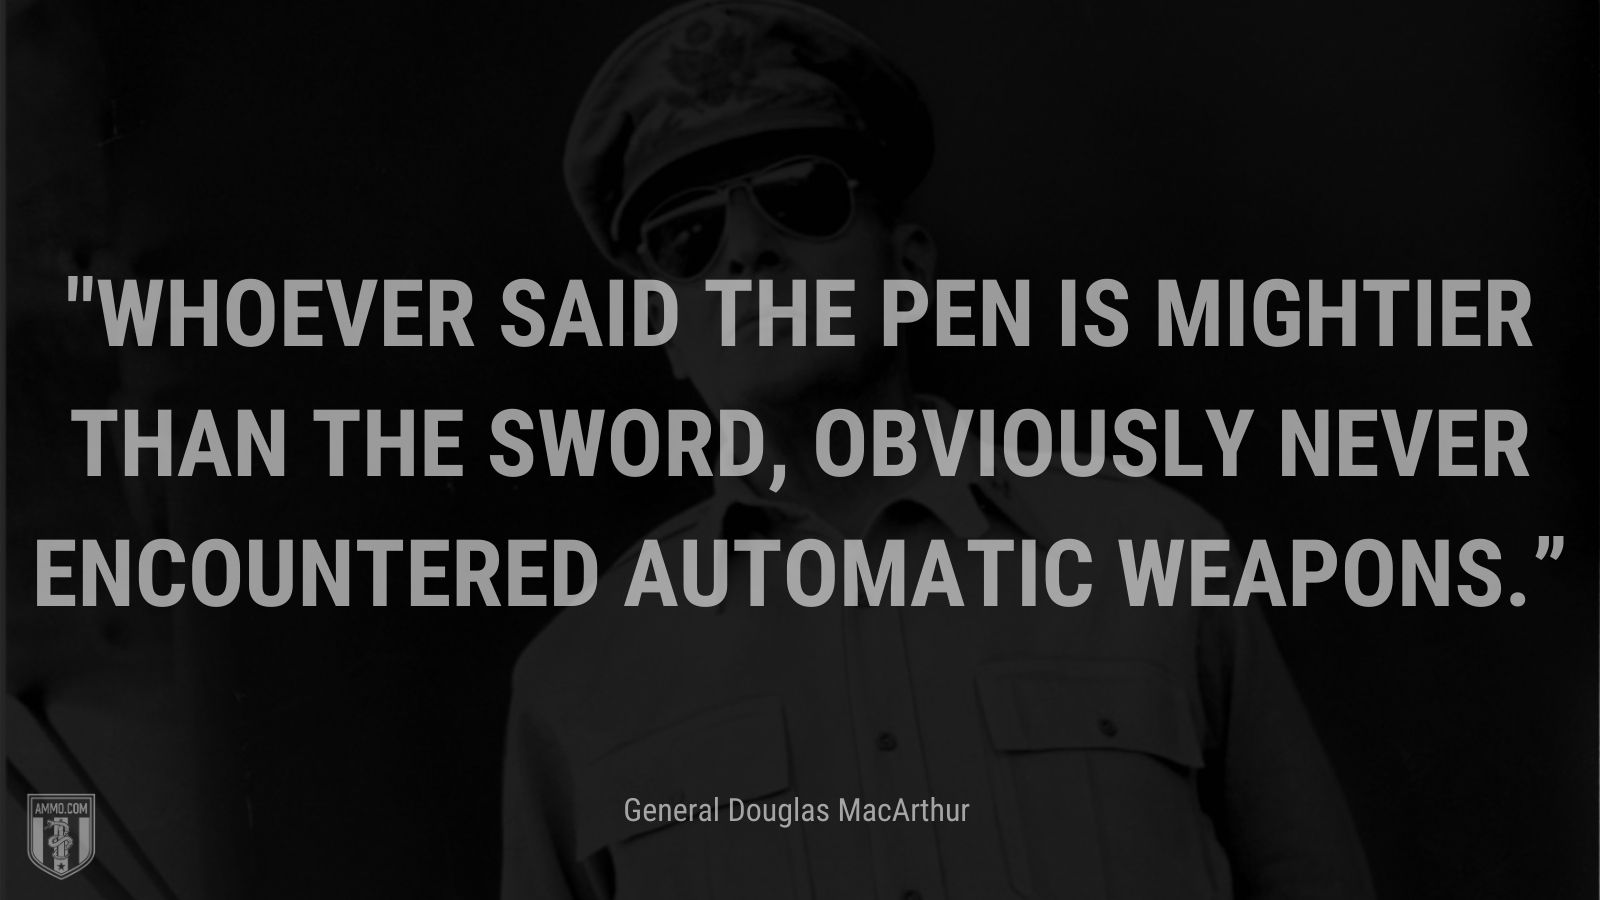 """""""Whoever said the pen is mightier than the sword, obviously never encountered automatic weapons."""" - General Douglas MacArthur"""